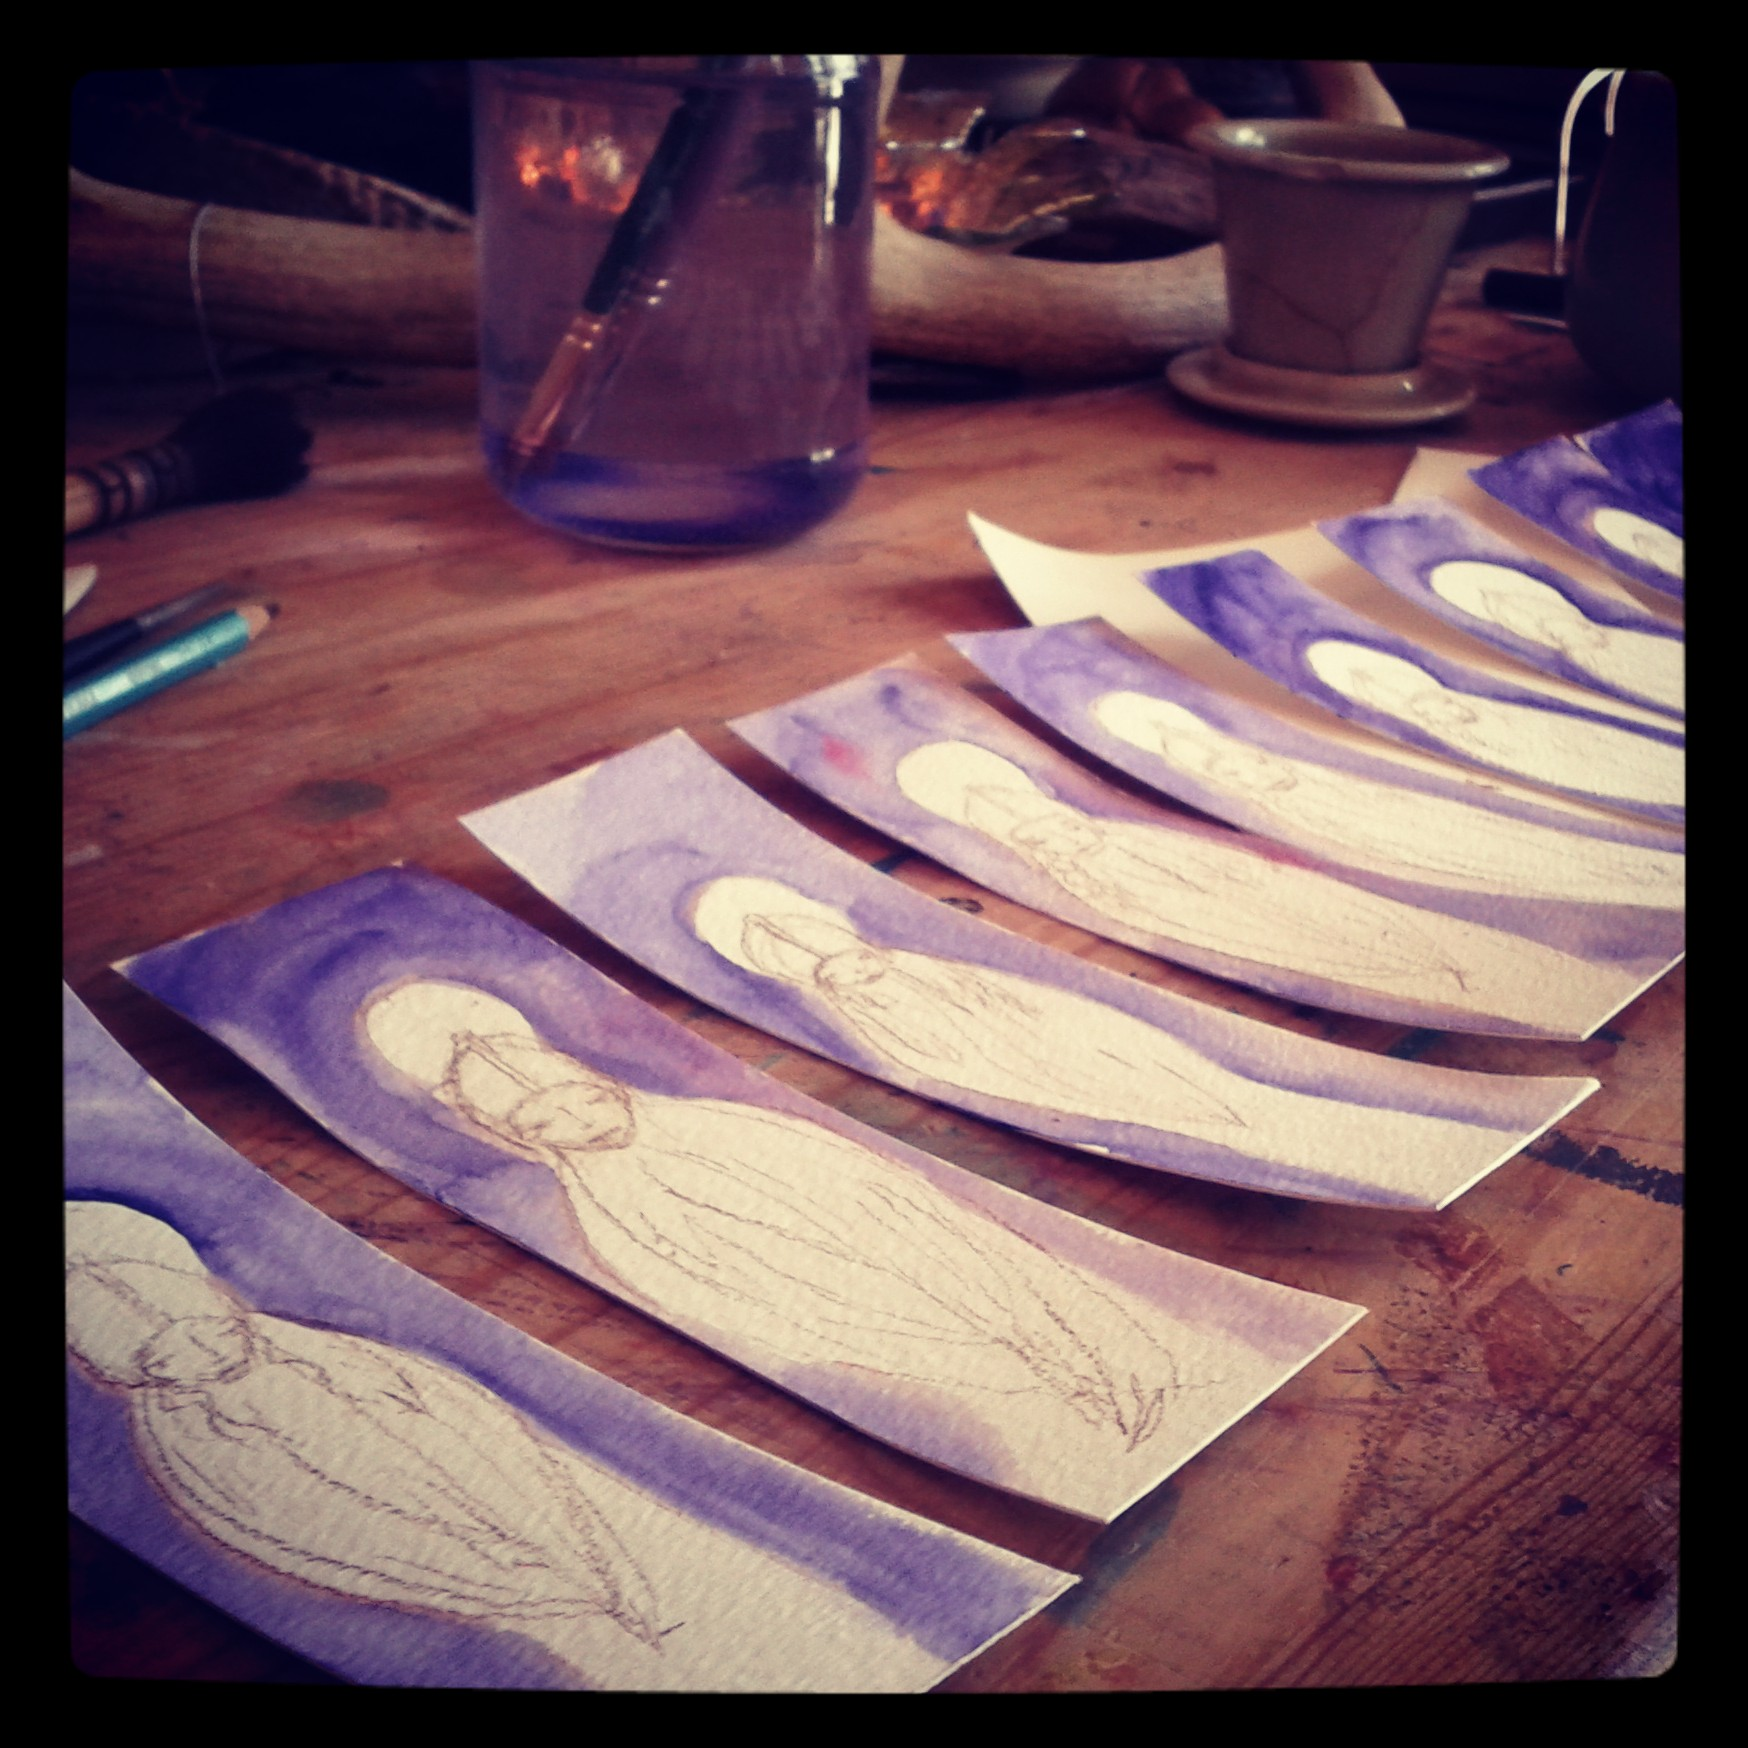 ten archangel azrael bookmarks for an angel party for grieving parents. painted for the lovely rita strough.